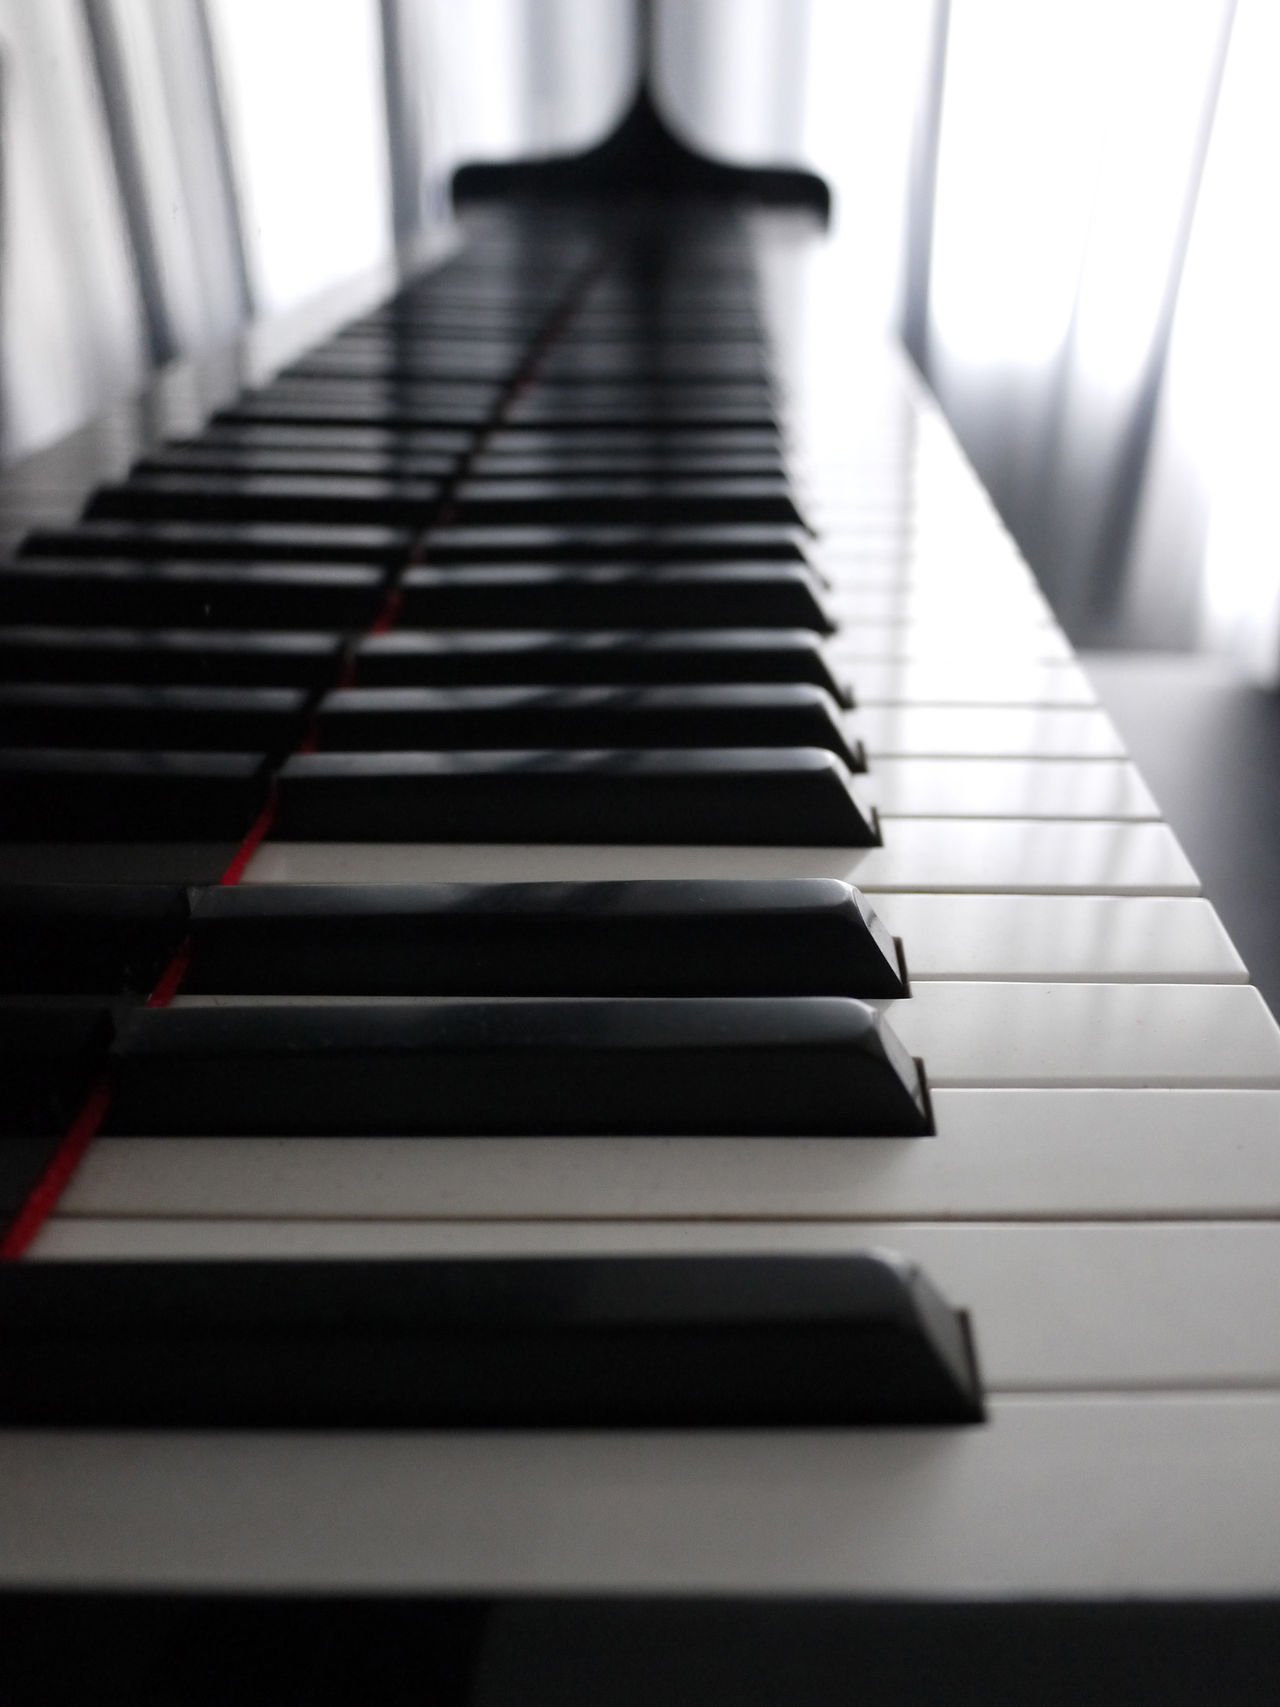 Arts Culture And Entertainment Close-up Indoors  Learning Musical Instrument Piano Piano Key Piano Moments